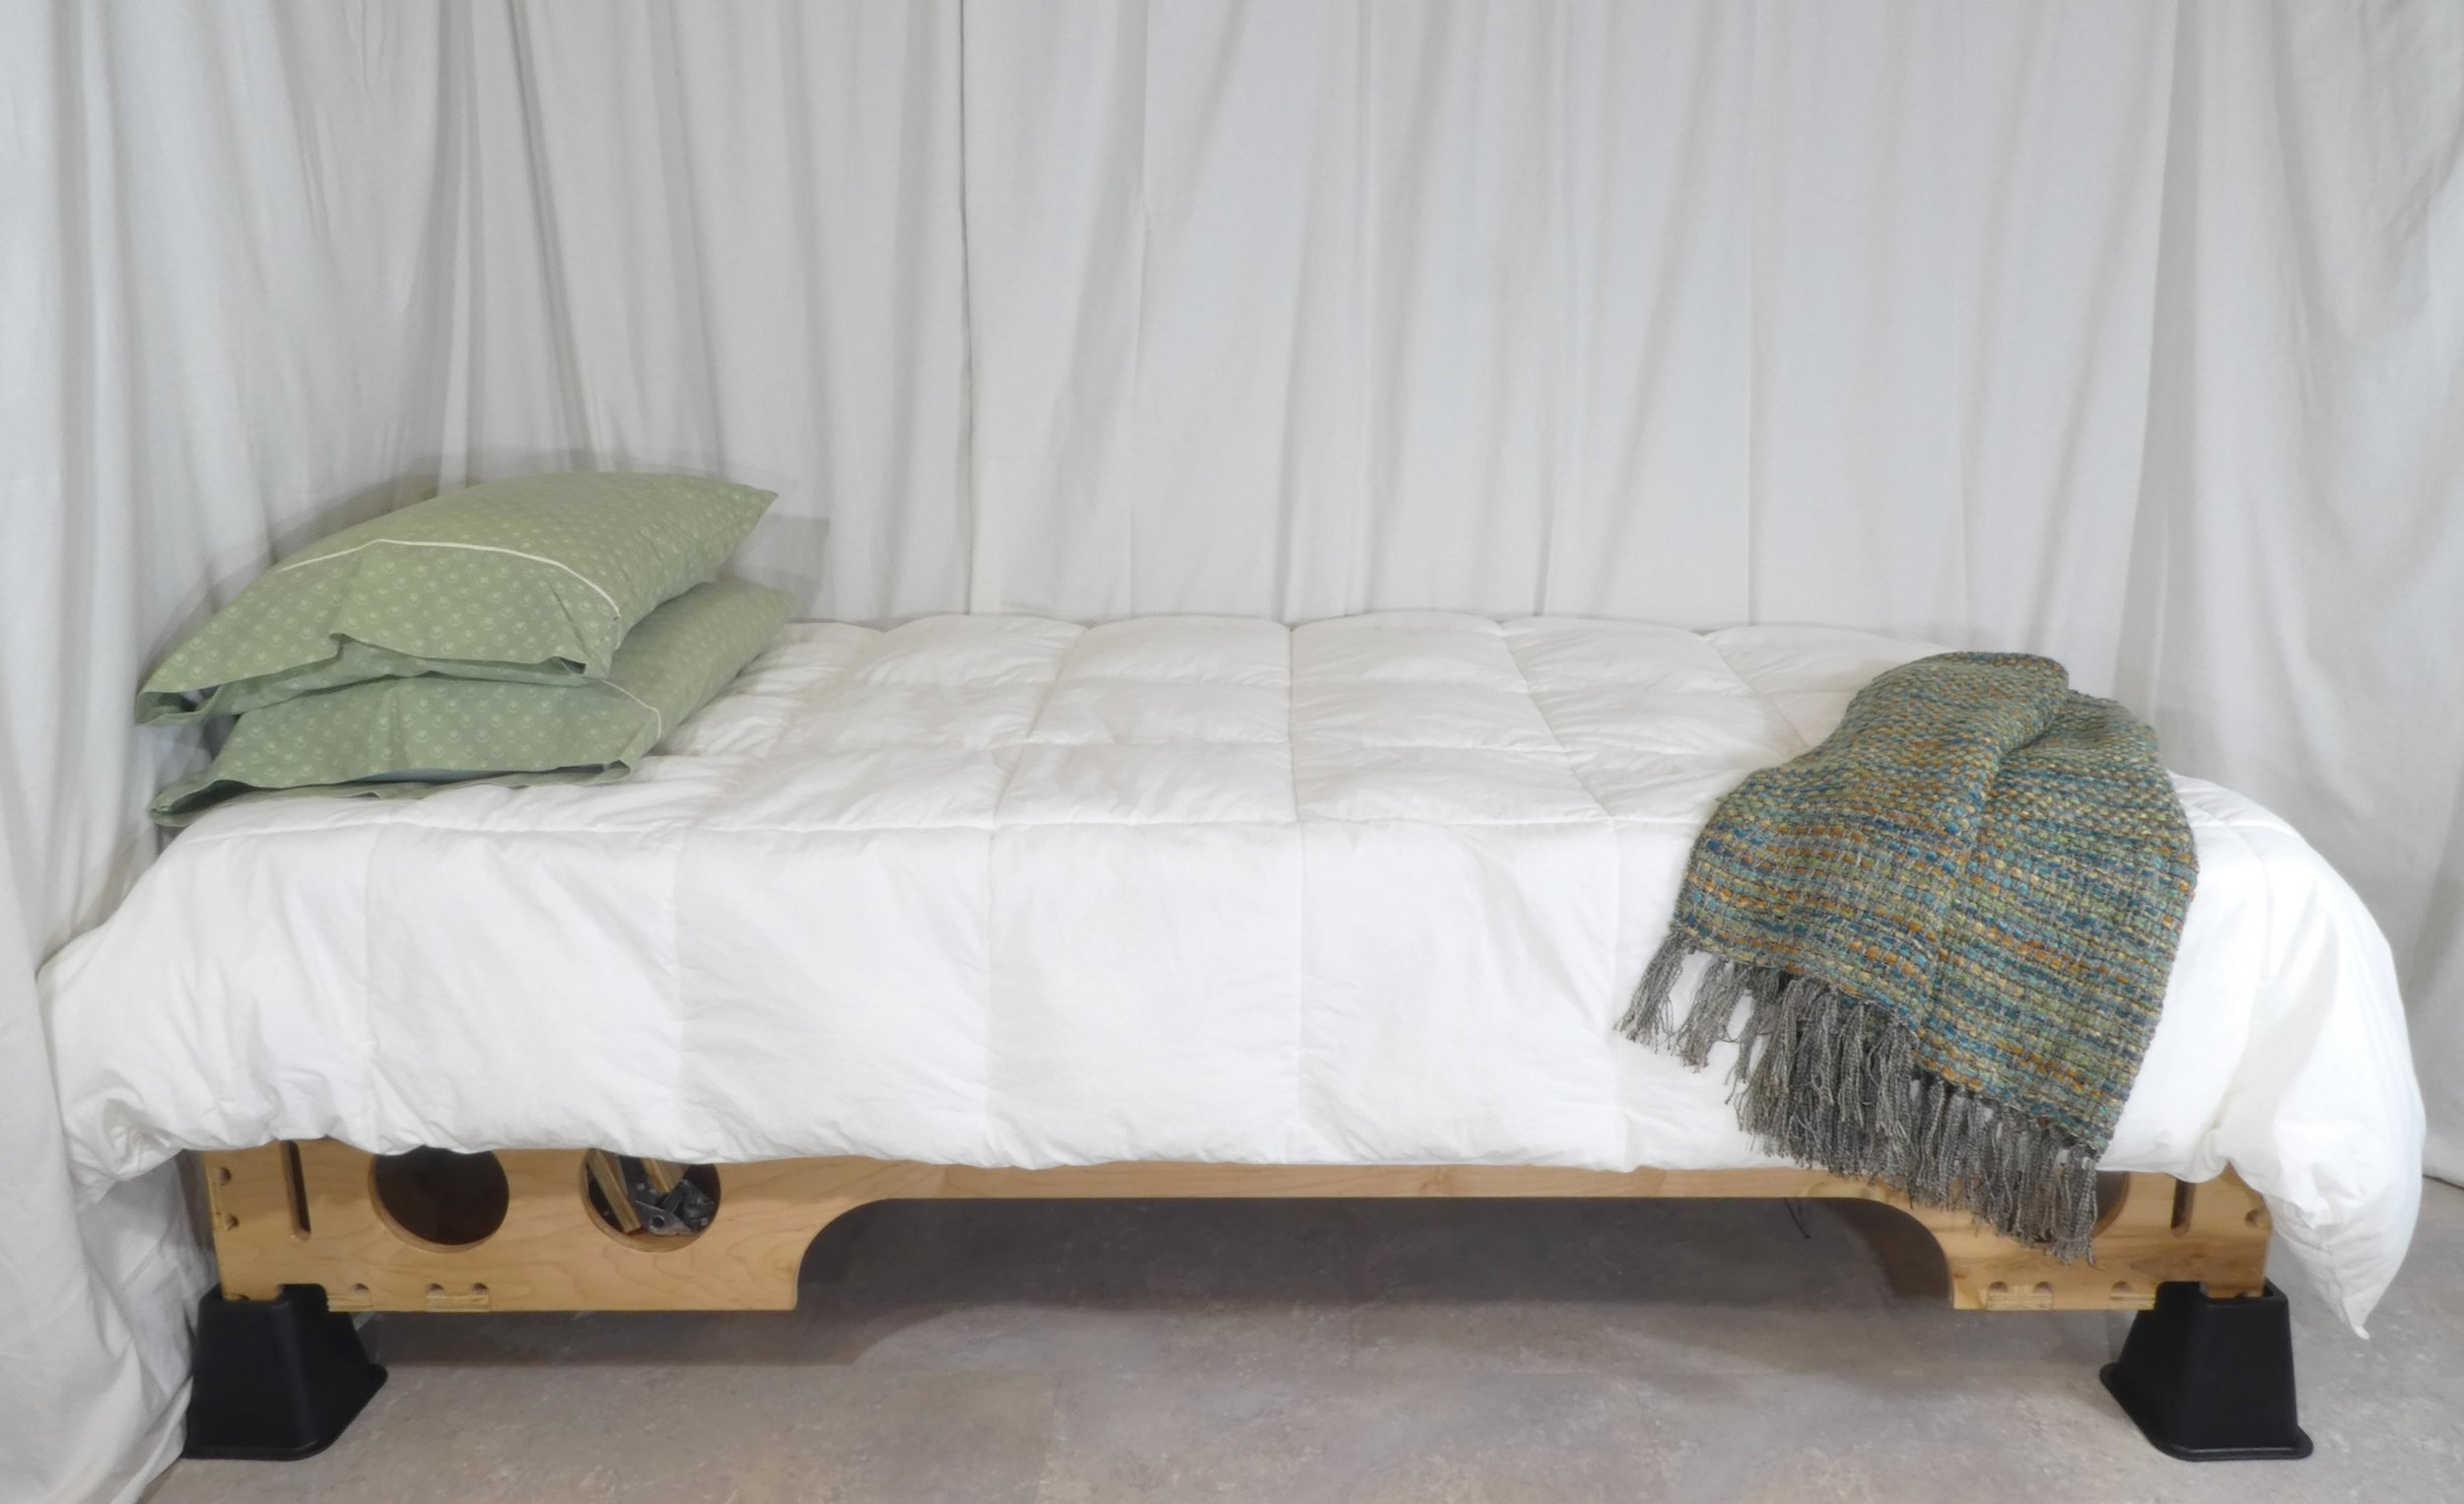 Here, you can see the Twin XL Microtraction Bed as it appears fully made. You can't tell the difference between it and a normal bed.